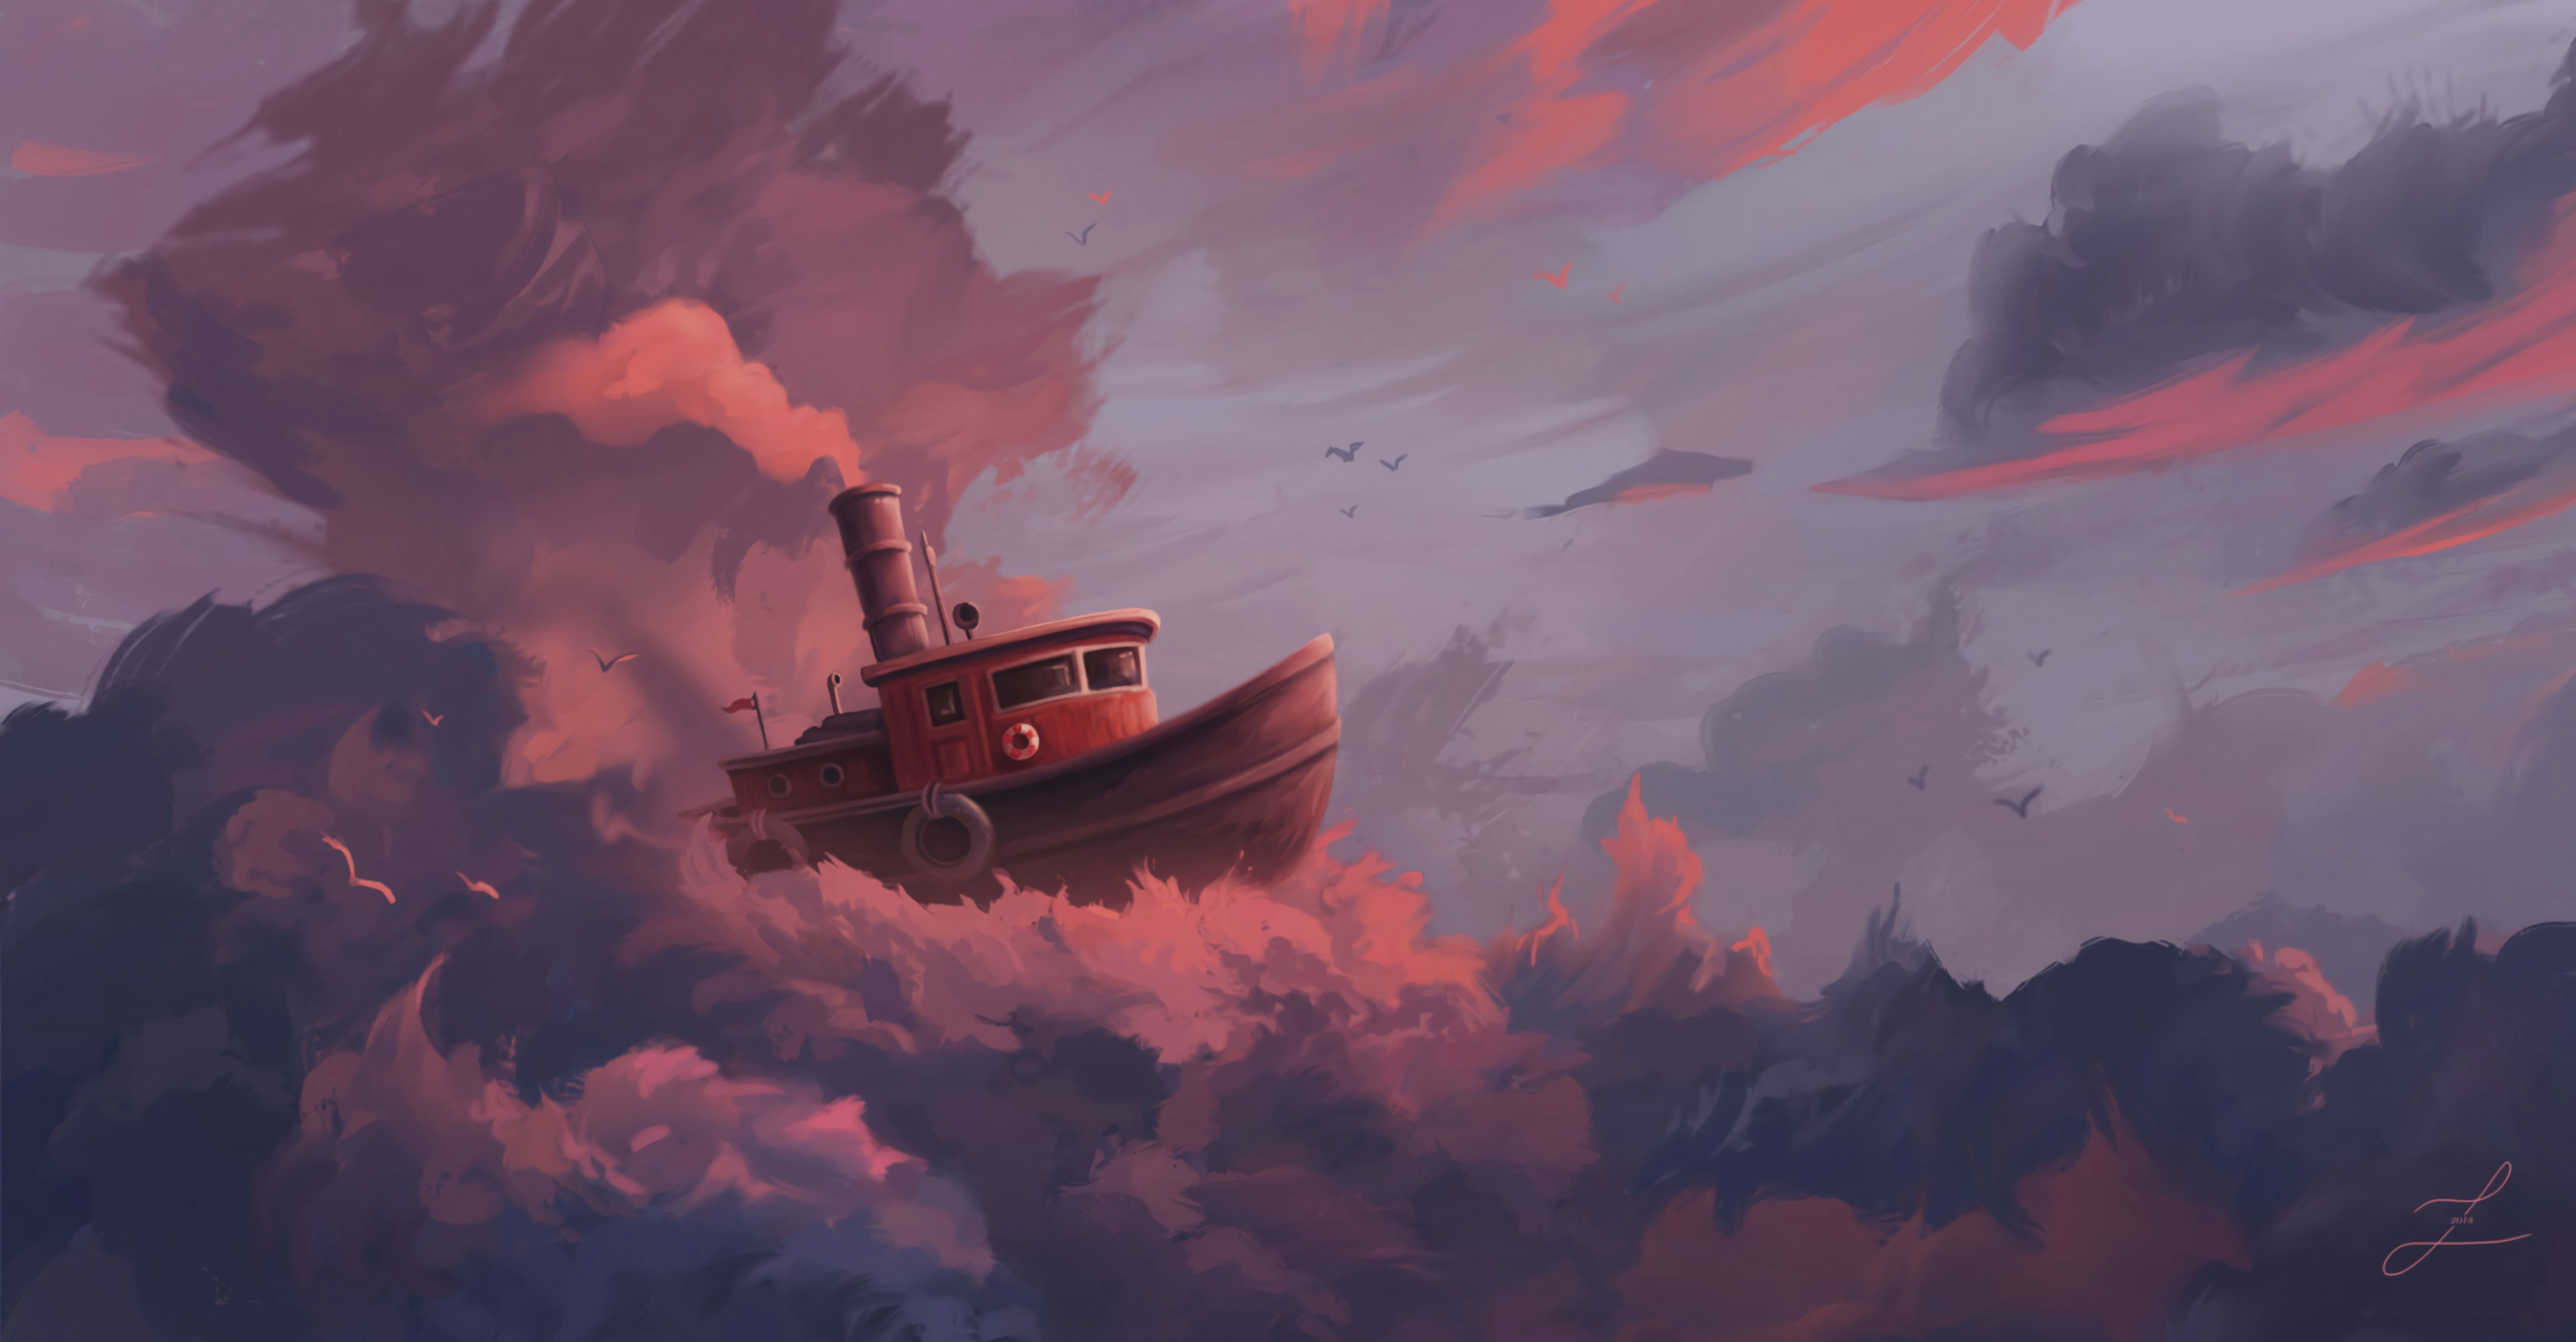 126105 download wallpaper Ship, Clouds, Art, Sky, Swim, Fantastic screensavers and pictures for free